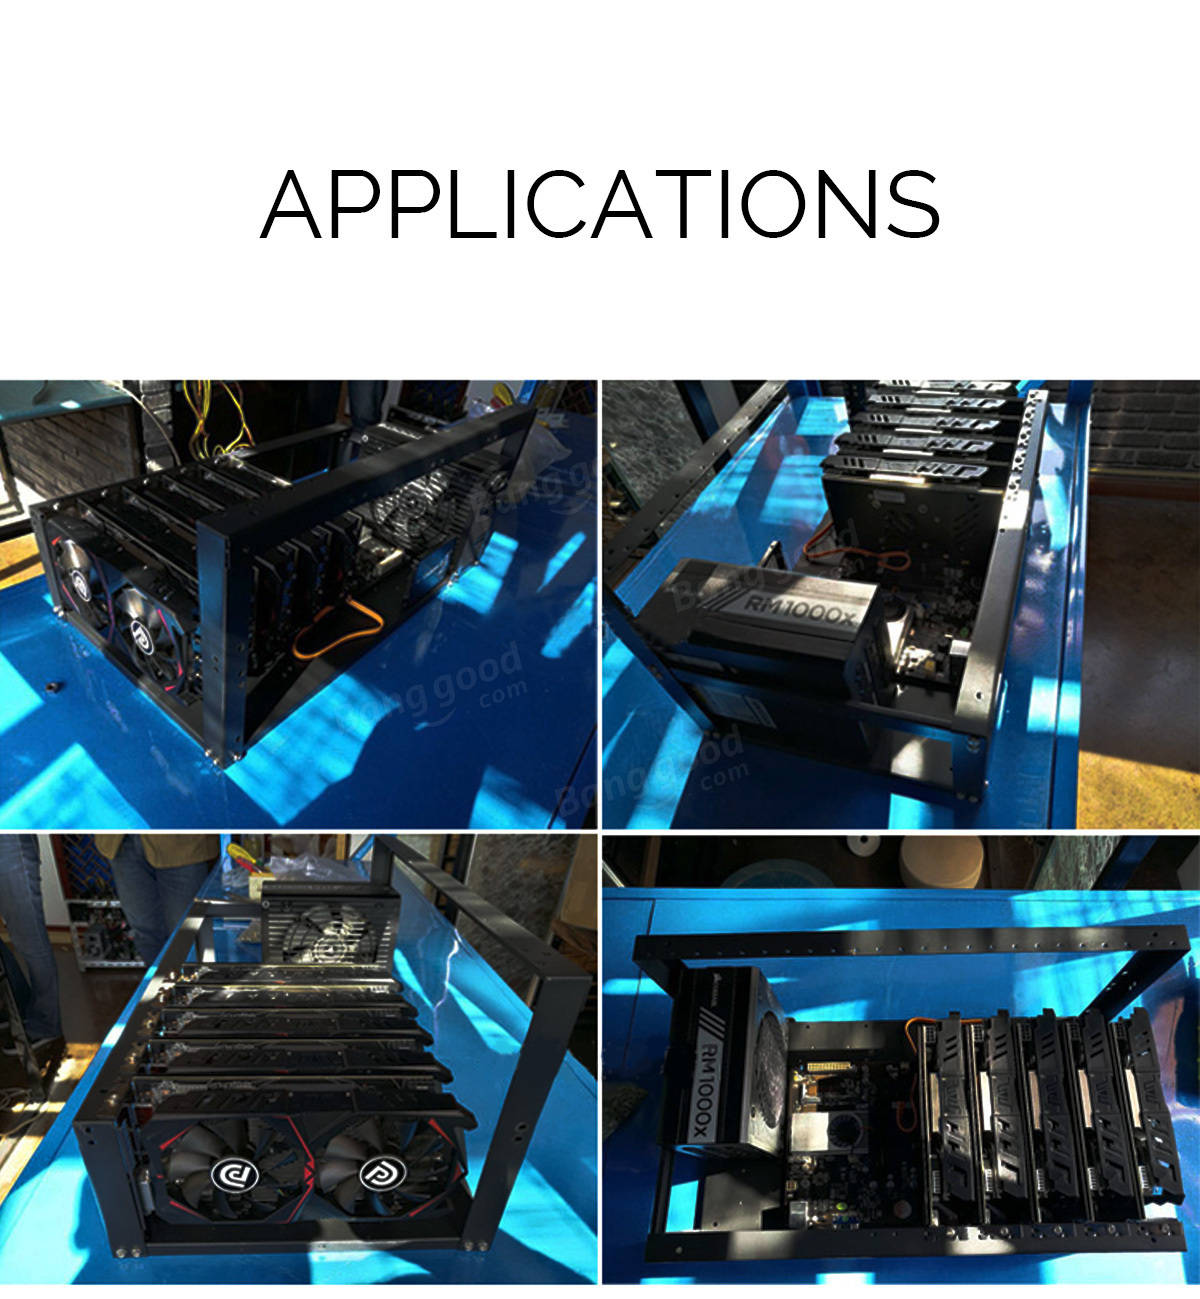 6 GPU Open Air Frame Mining Rig Aluminum Stackable Case Mining Machine Frame With 4 Fans